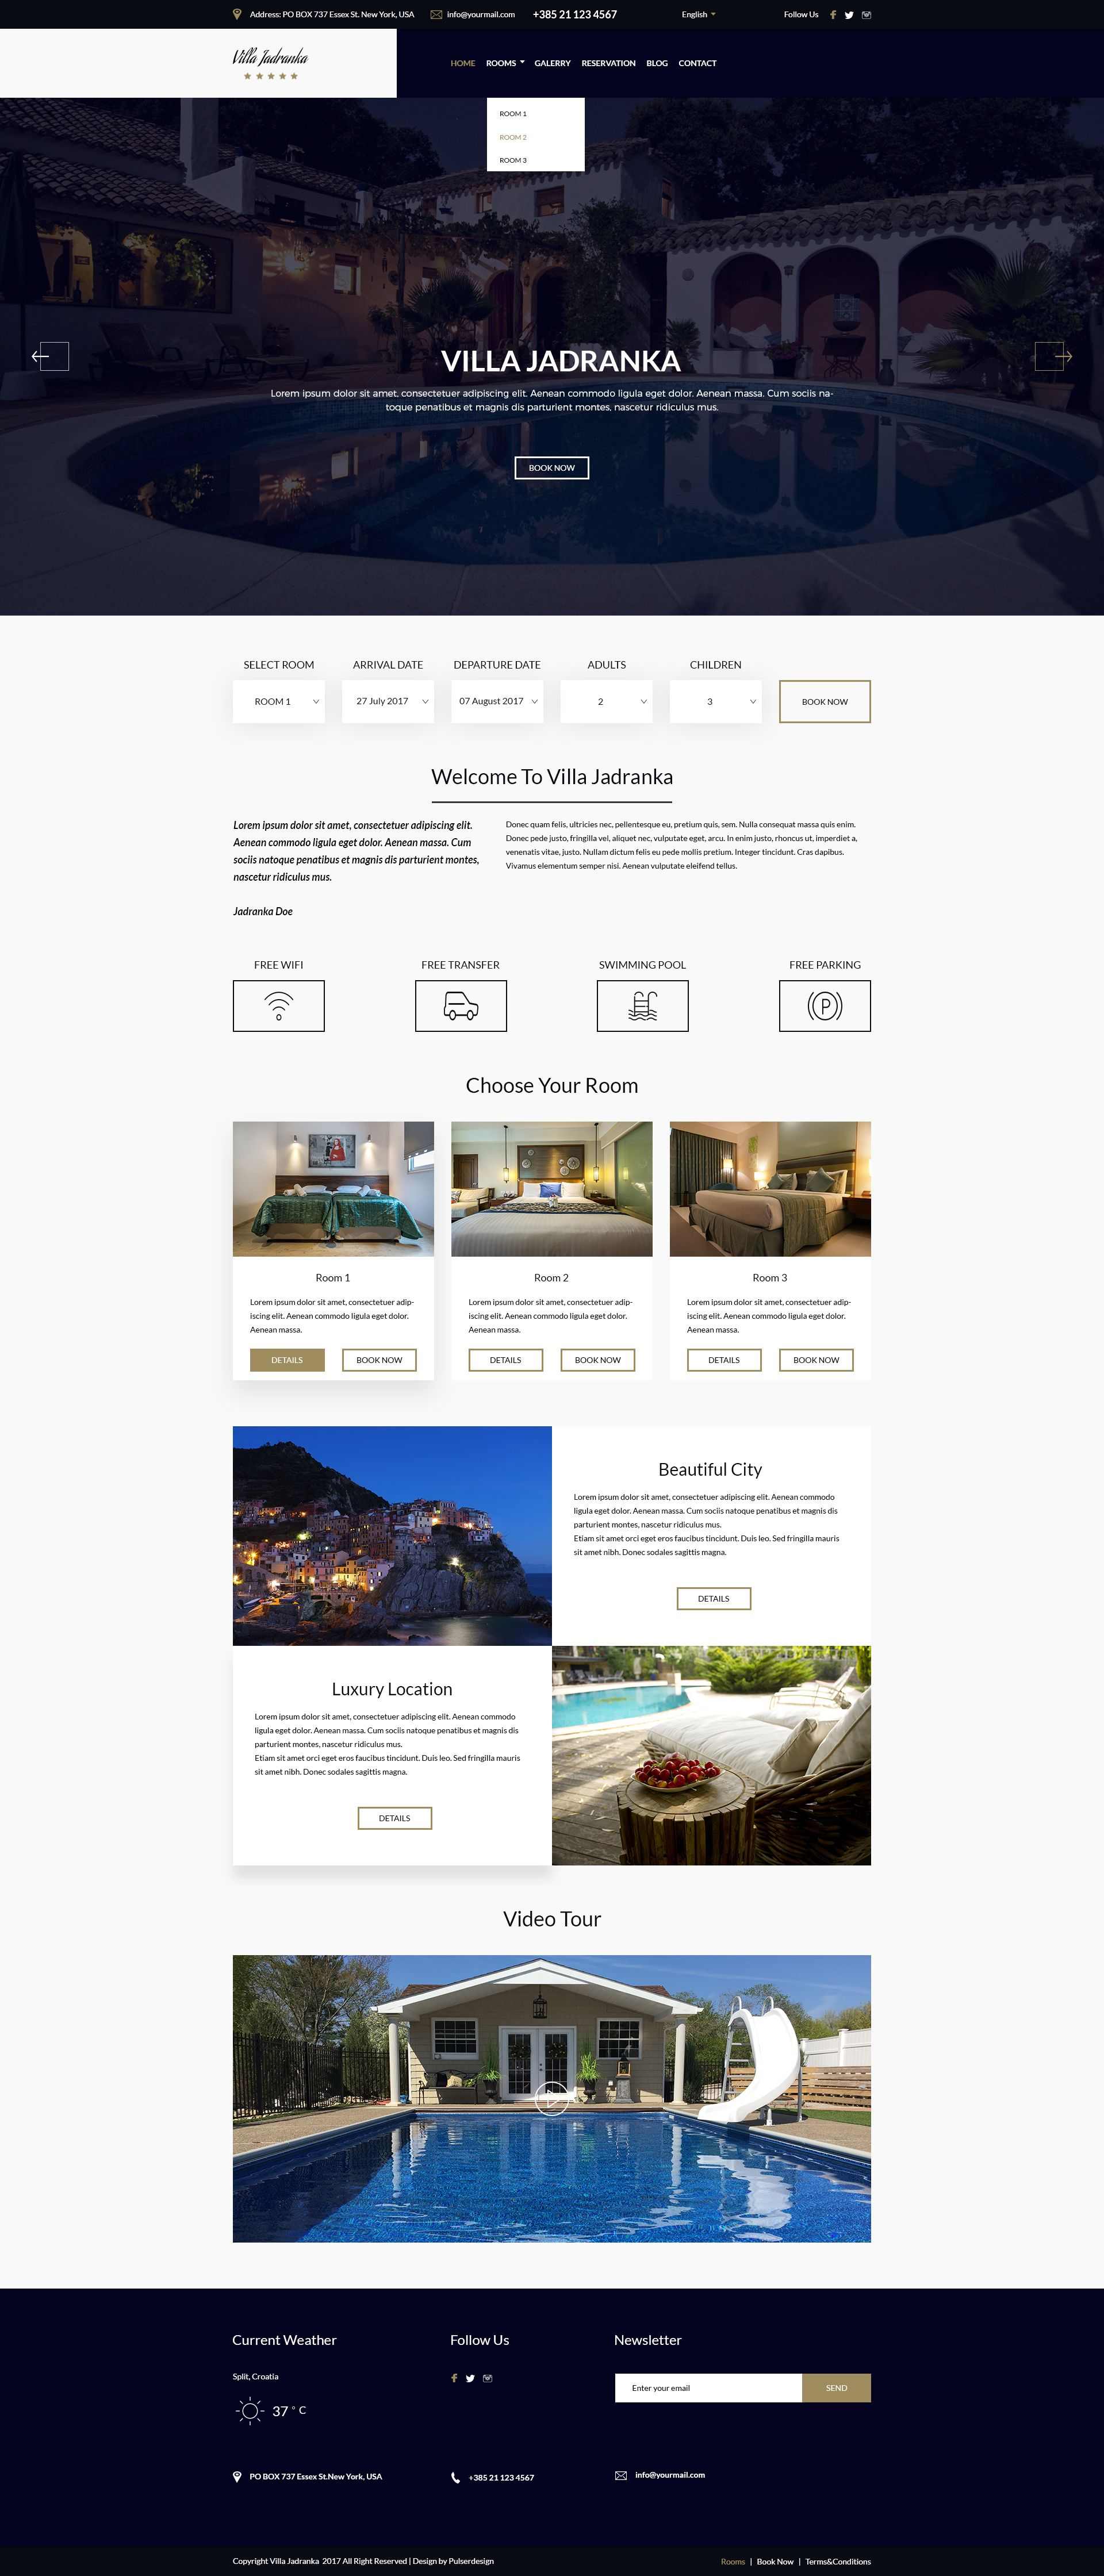 Villa Jadranka - Website PSD Template Screenshot 7